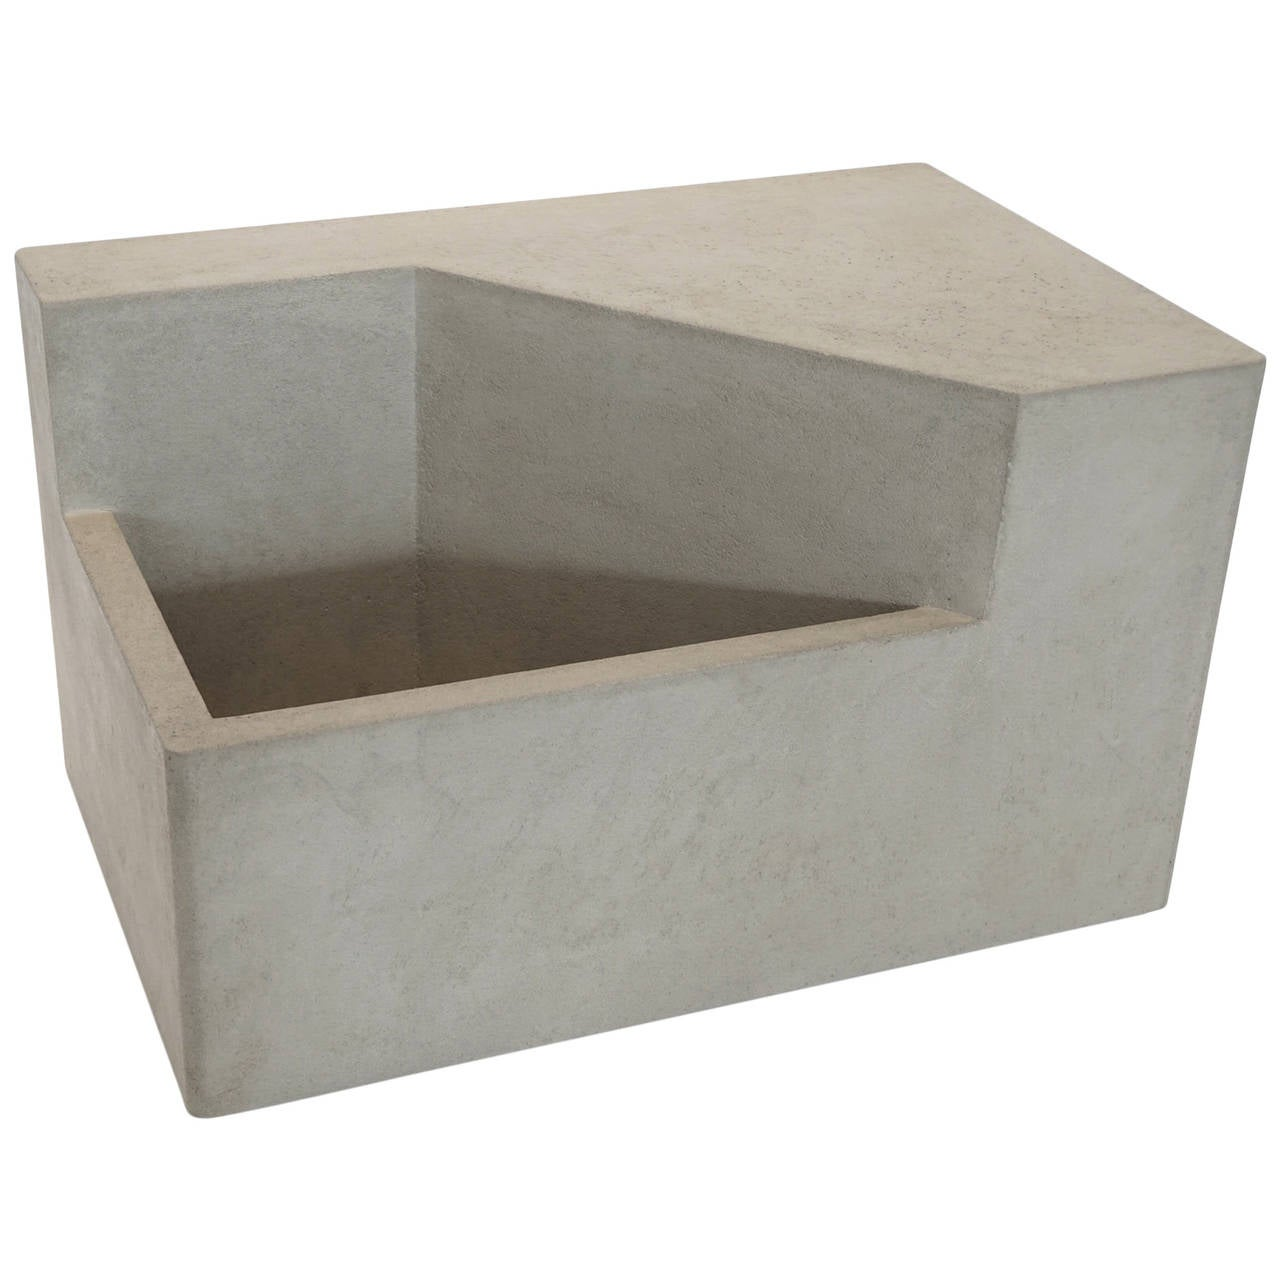 Scarpa i cast concrete bench or planter for sale at 1stdibs - Casting concrete planters ...